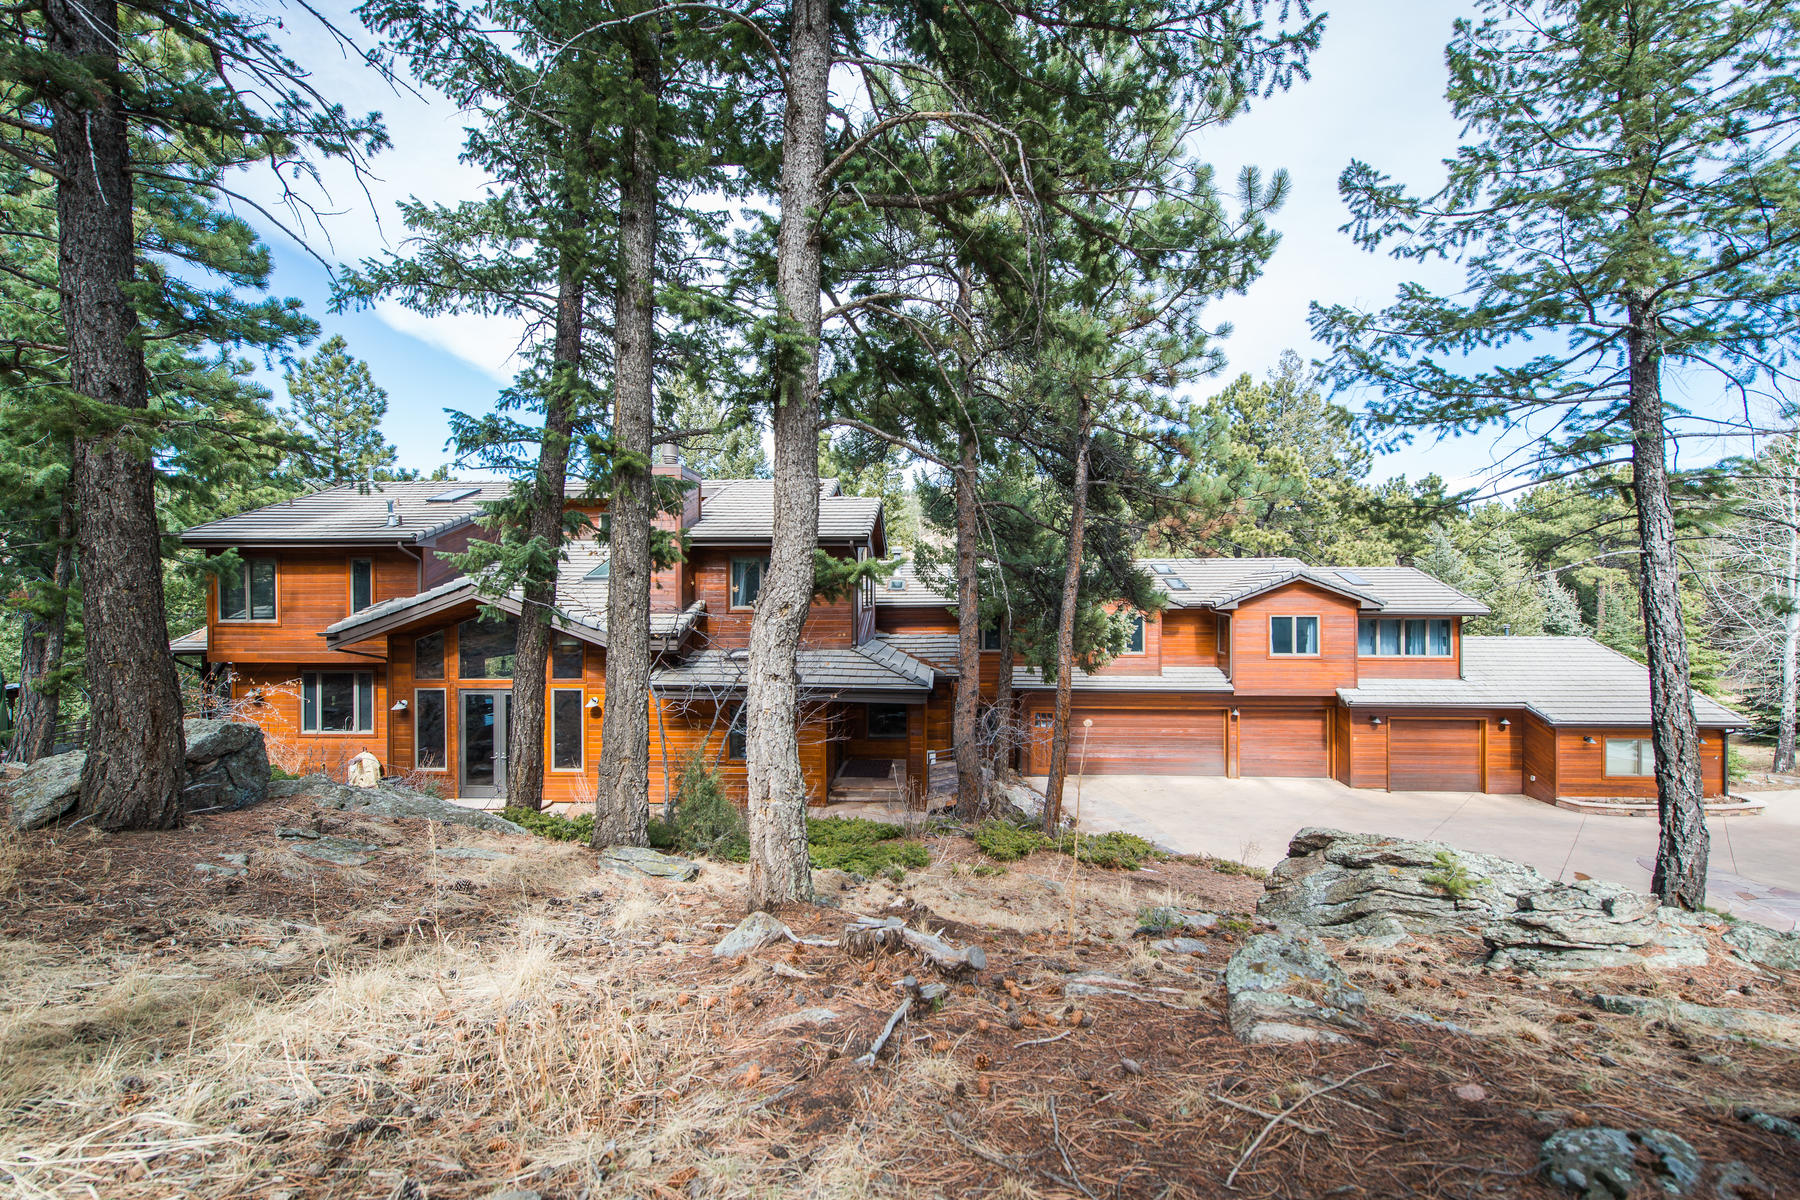 Single Family Home for Sale at Beautifully Remodeled & Rebuilt Home 1745 Foothills Drive Golden, Colorado 80401 United States